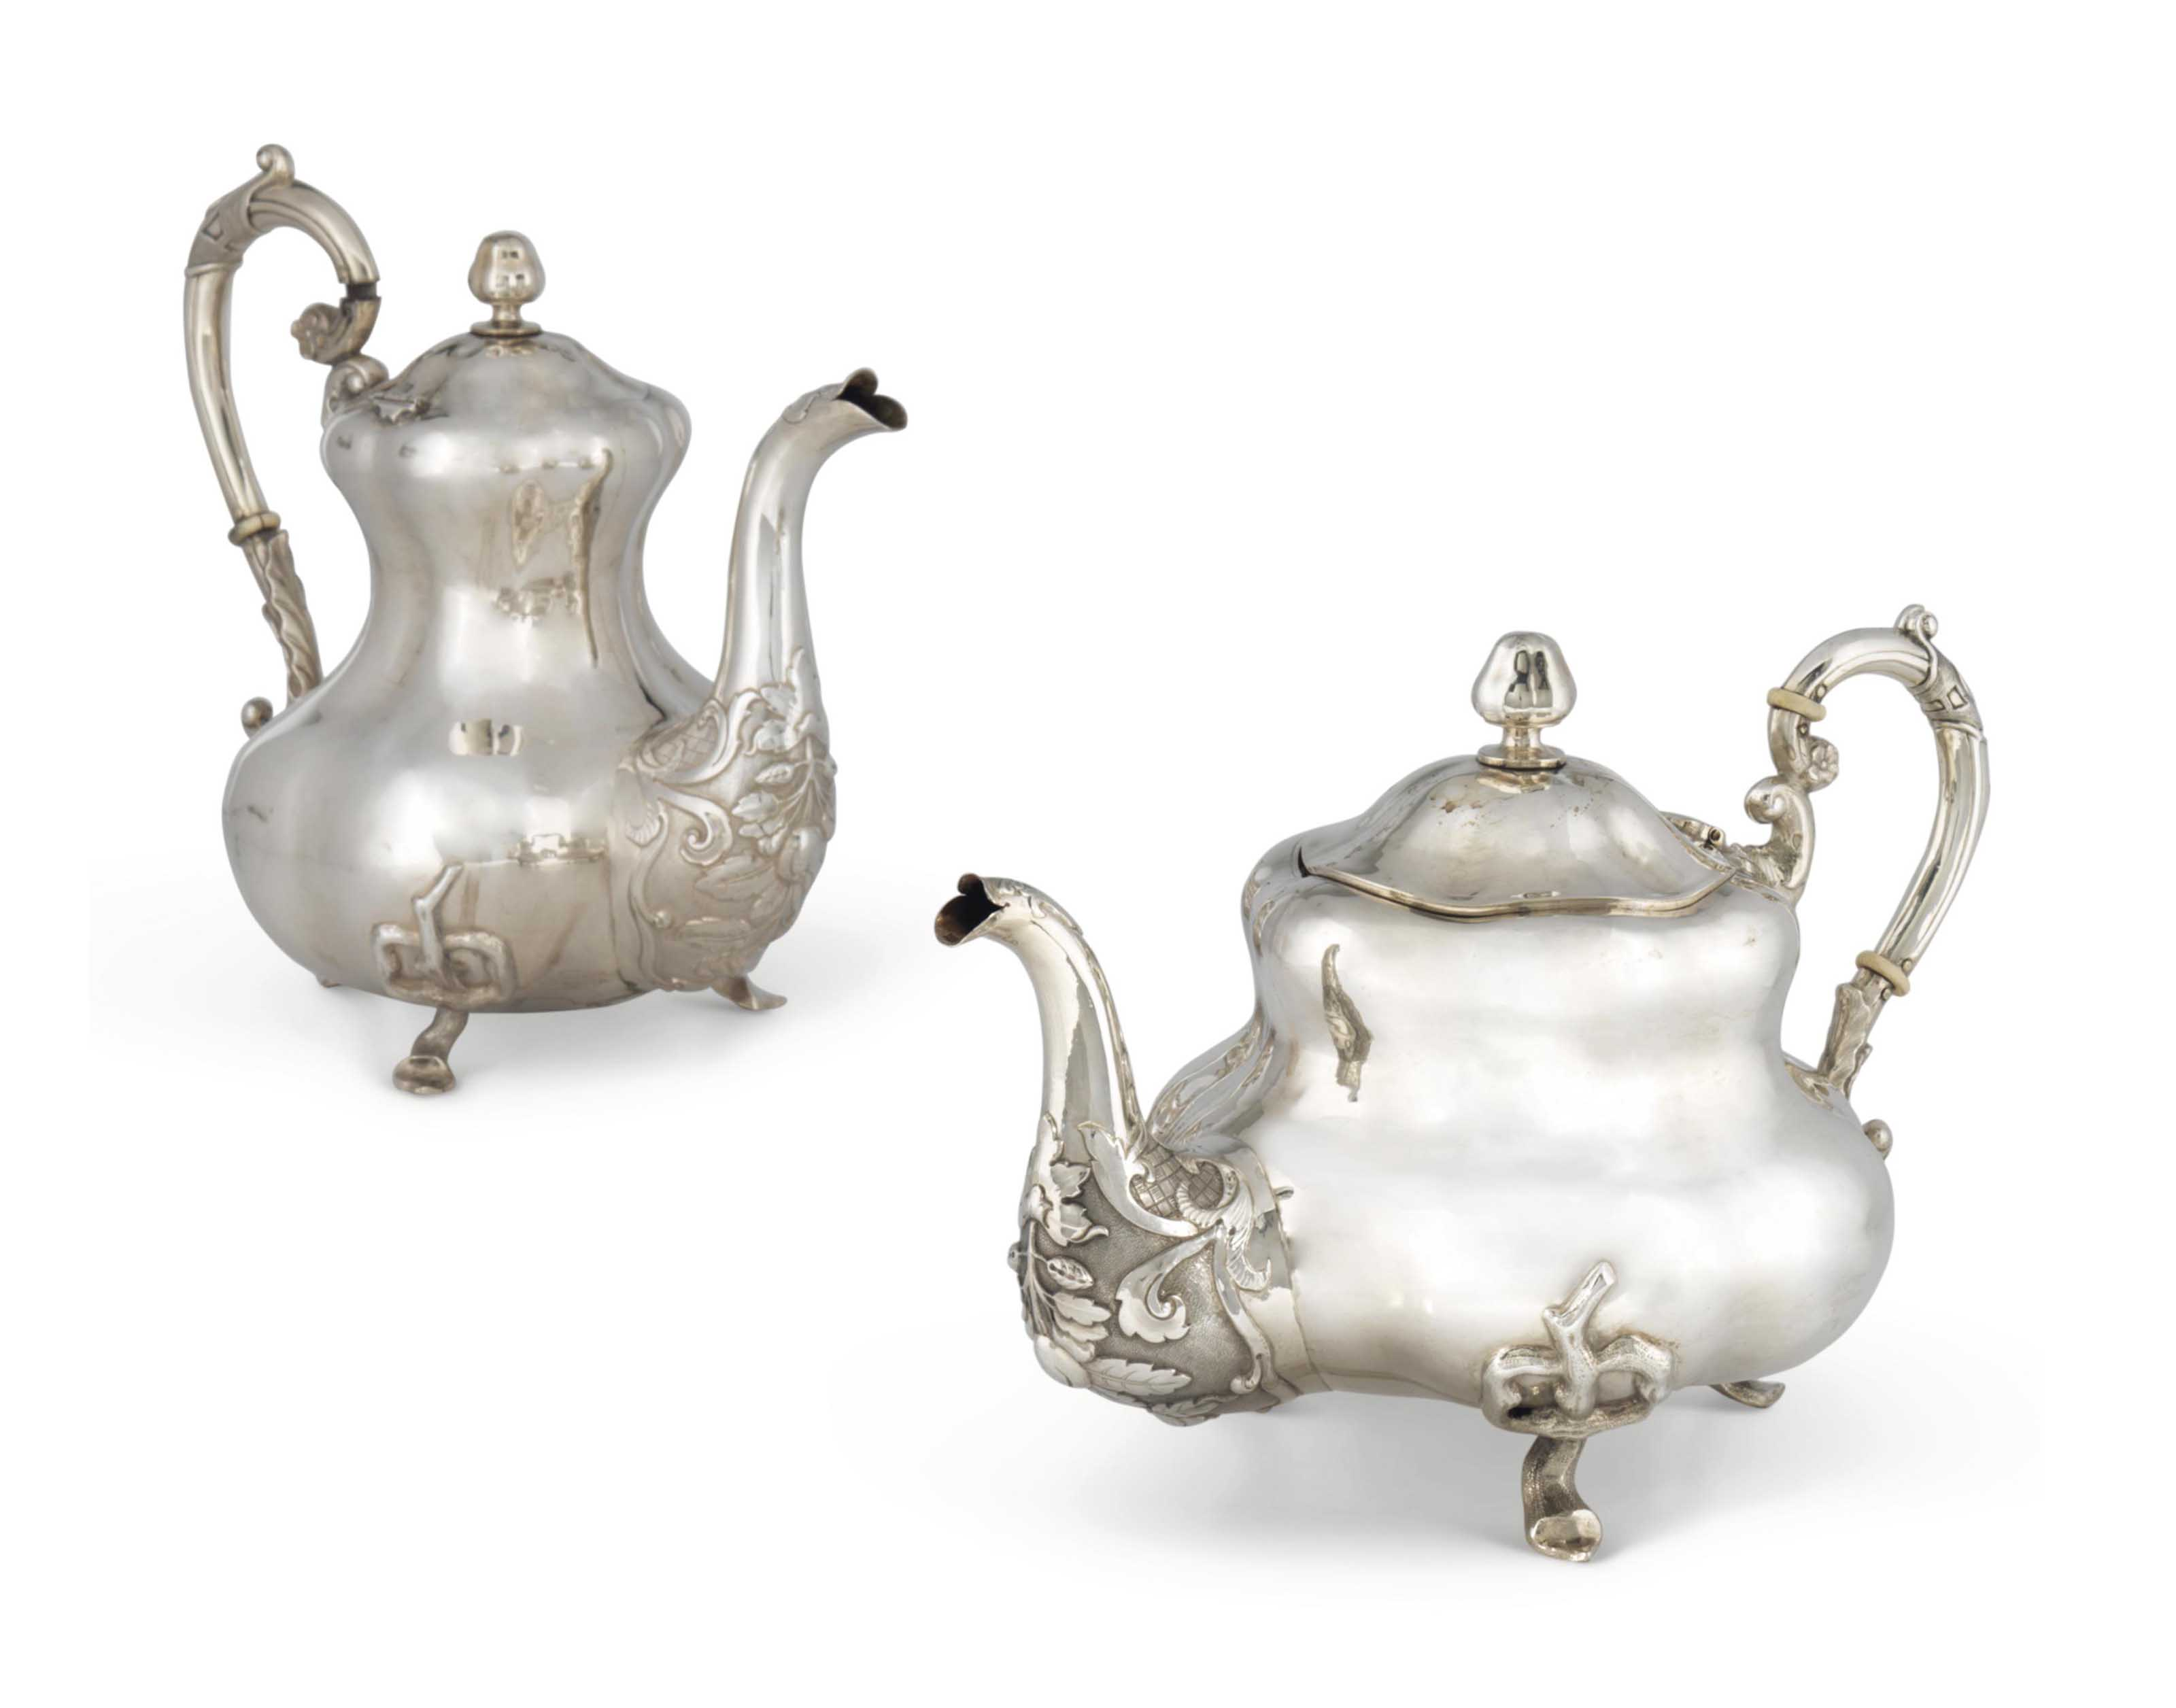 A RUSSIAN SILVER TEAPOT AND A